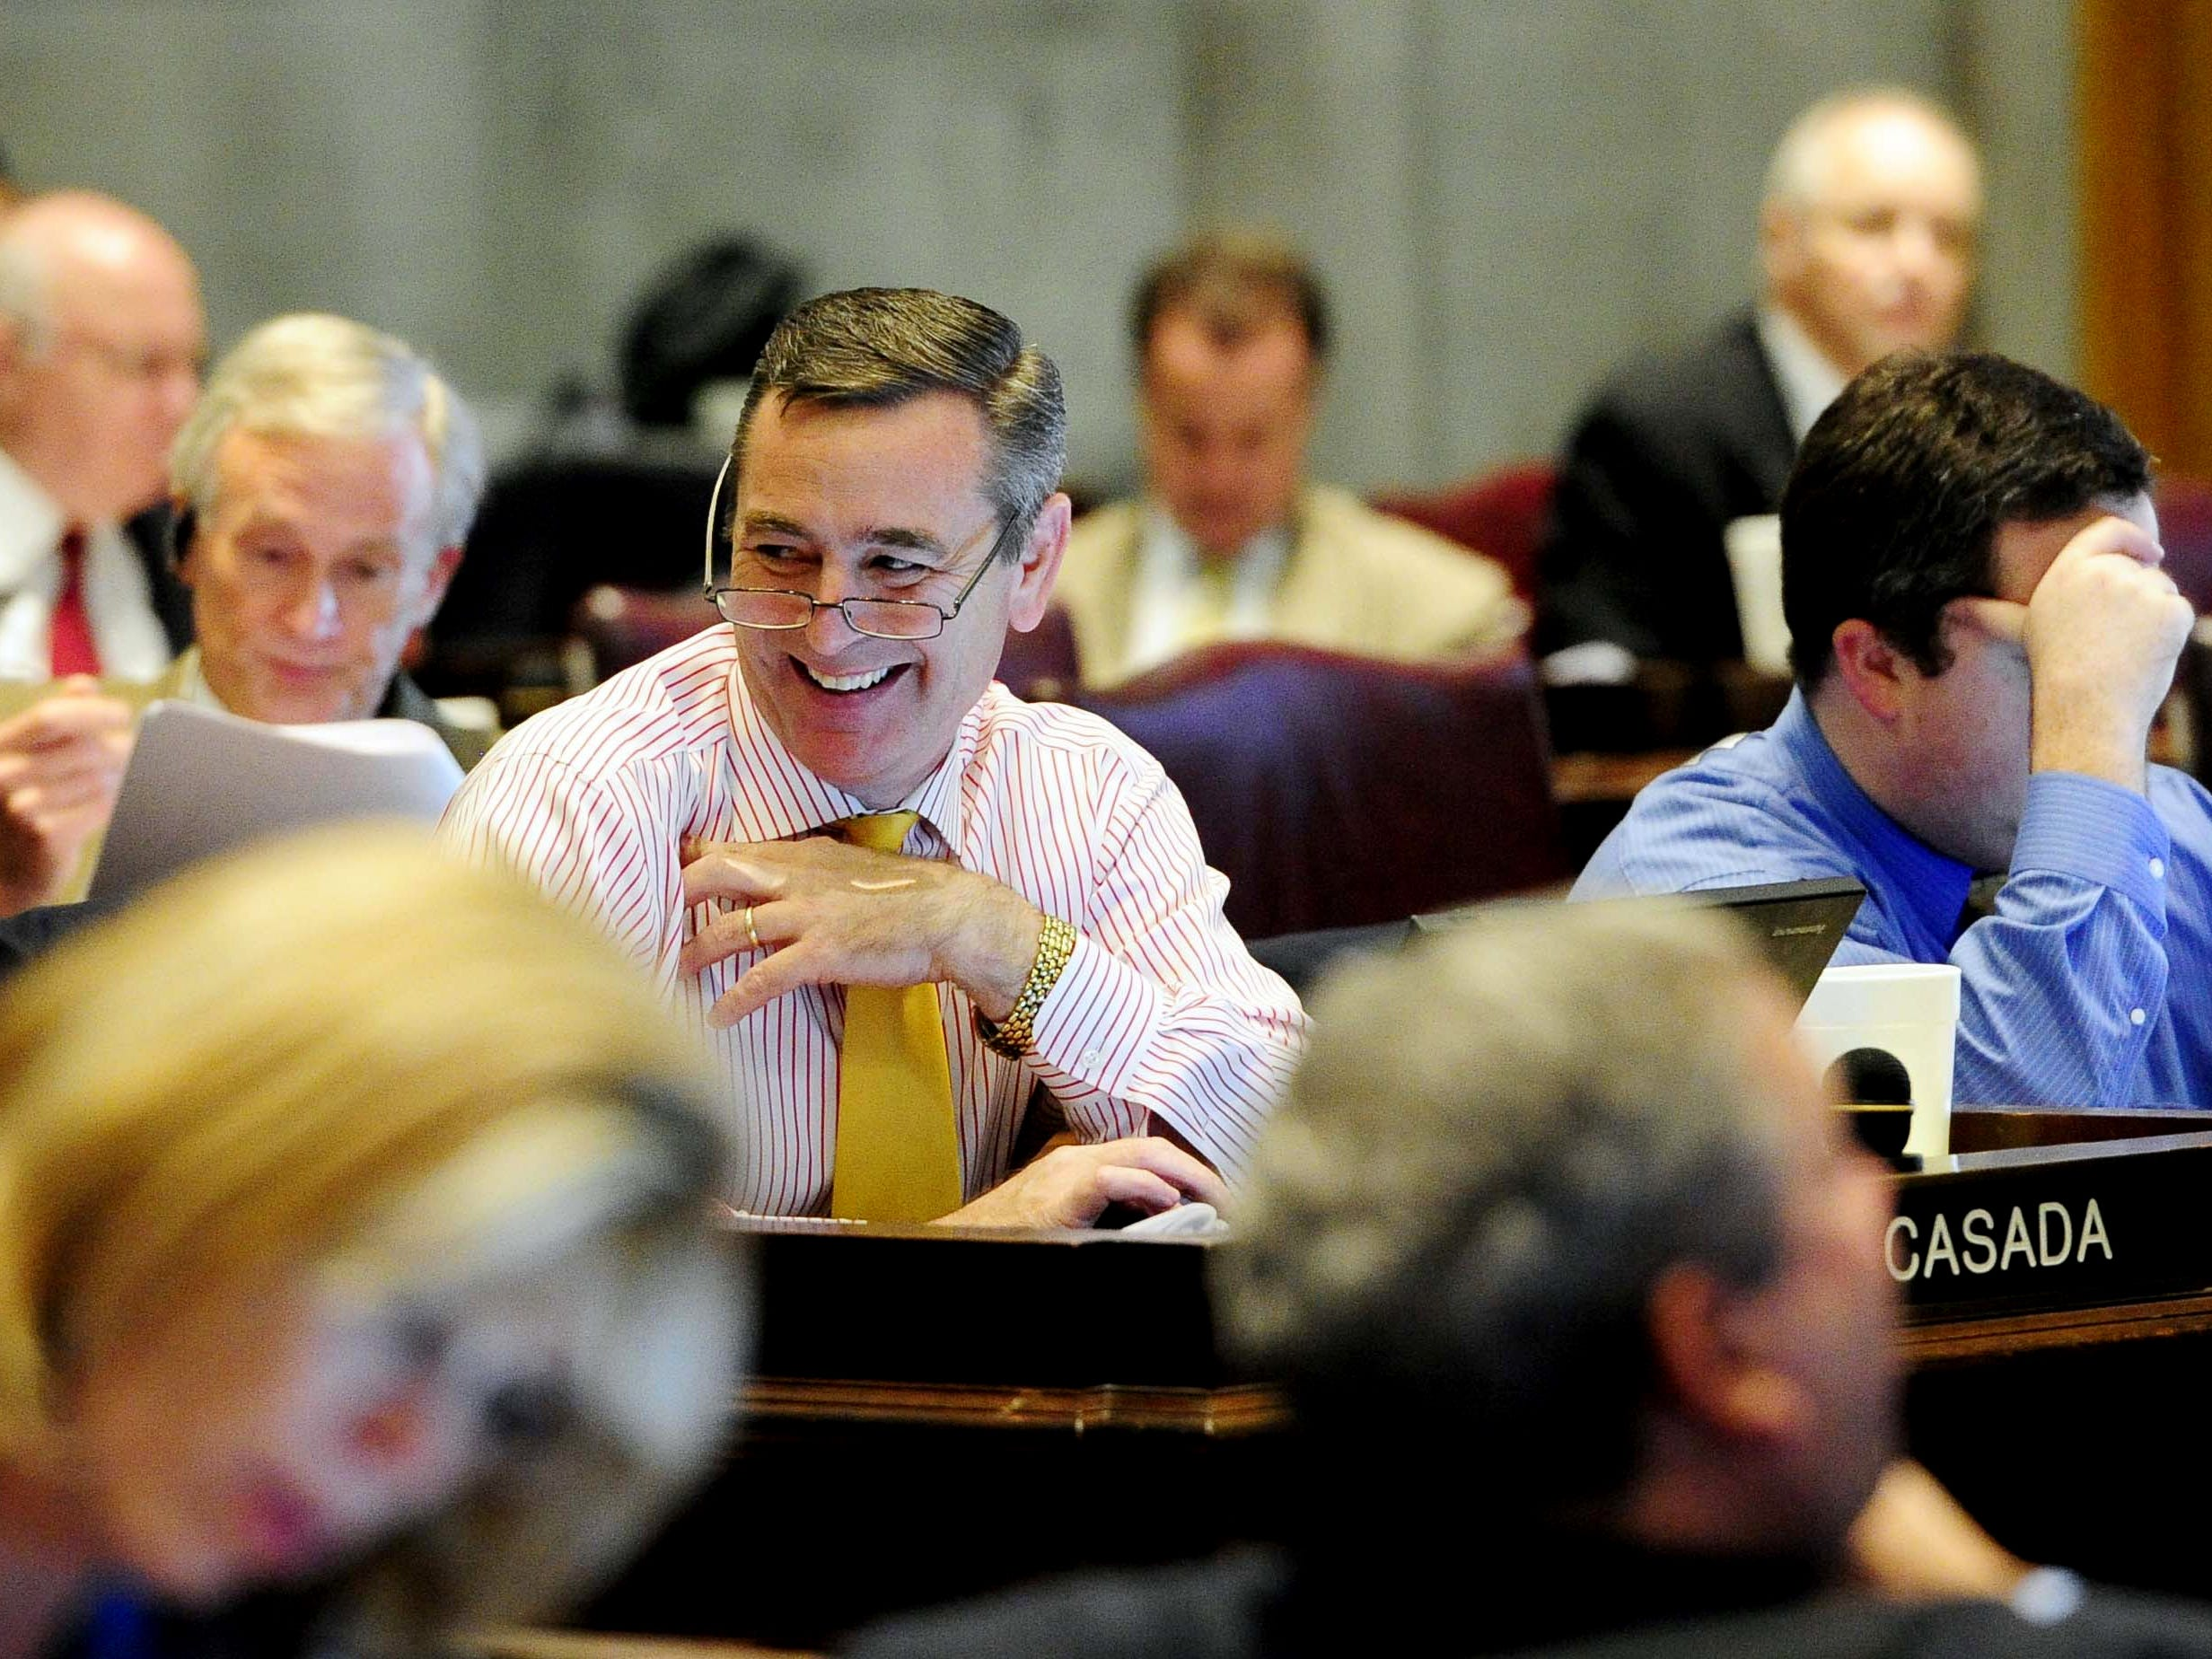 State Rep. Glen Casada smiles during the last day of the legislative session at the state Capitol on May 1, 2012.